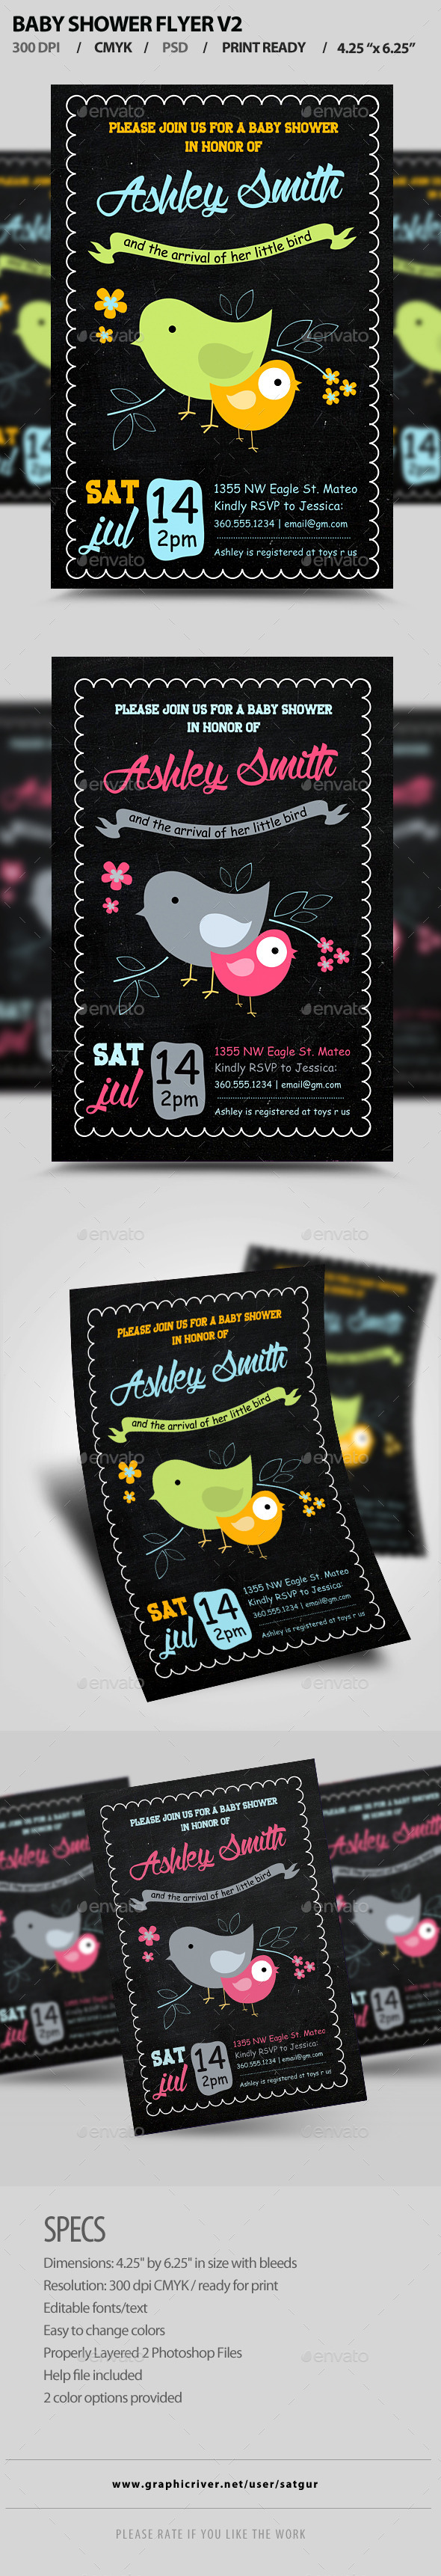 Baby Shower Flyer Template PSD V2 - Invitations Cards & Invites